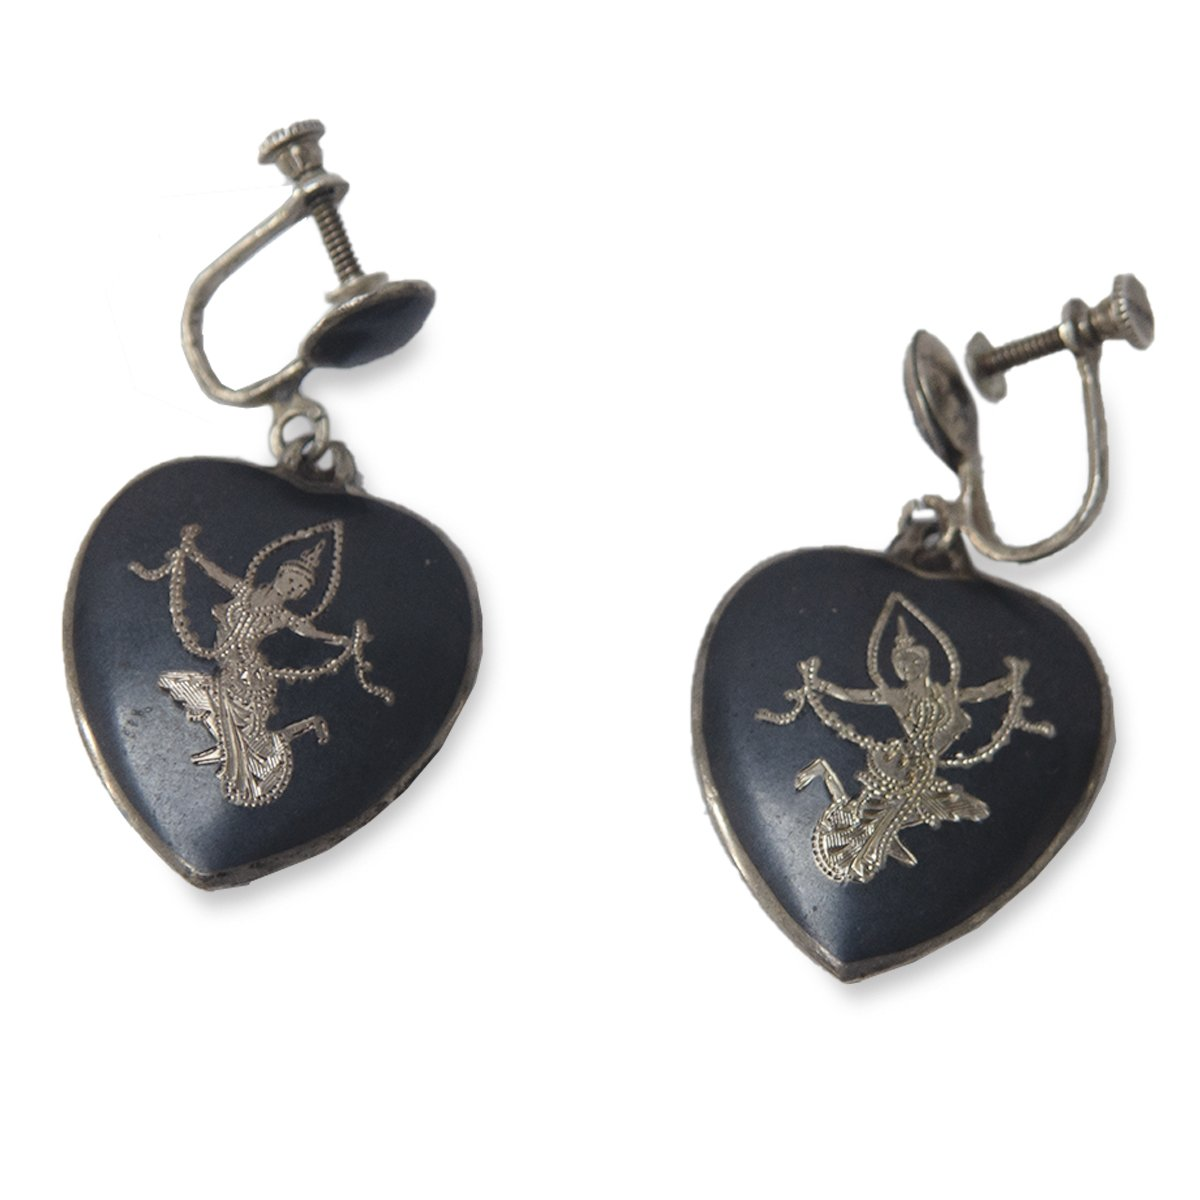 Vintage 1950s Siam Sterling Silver Heart Earrings, Screwbacks